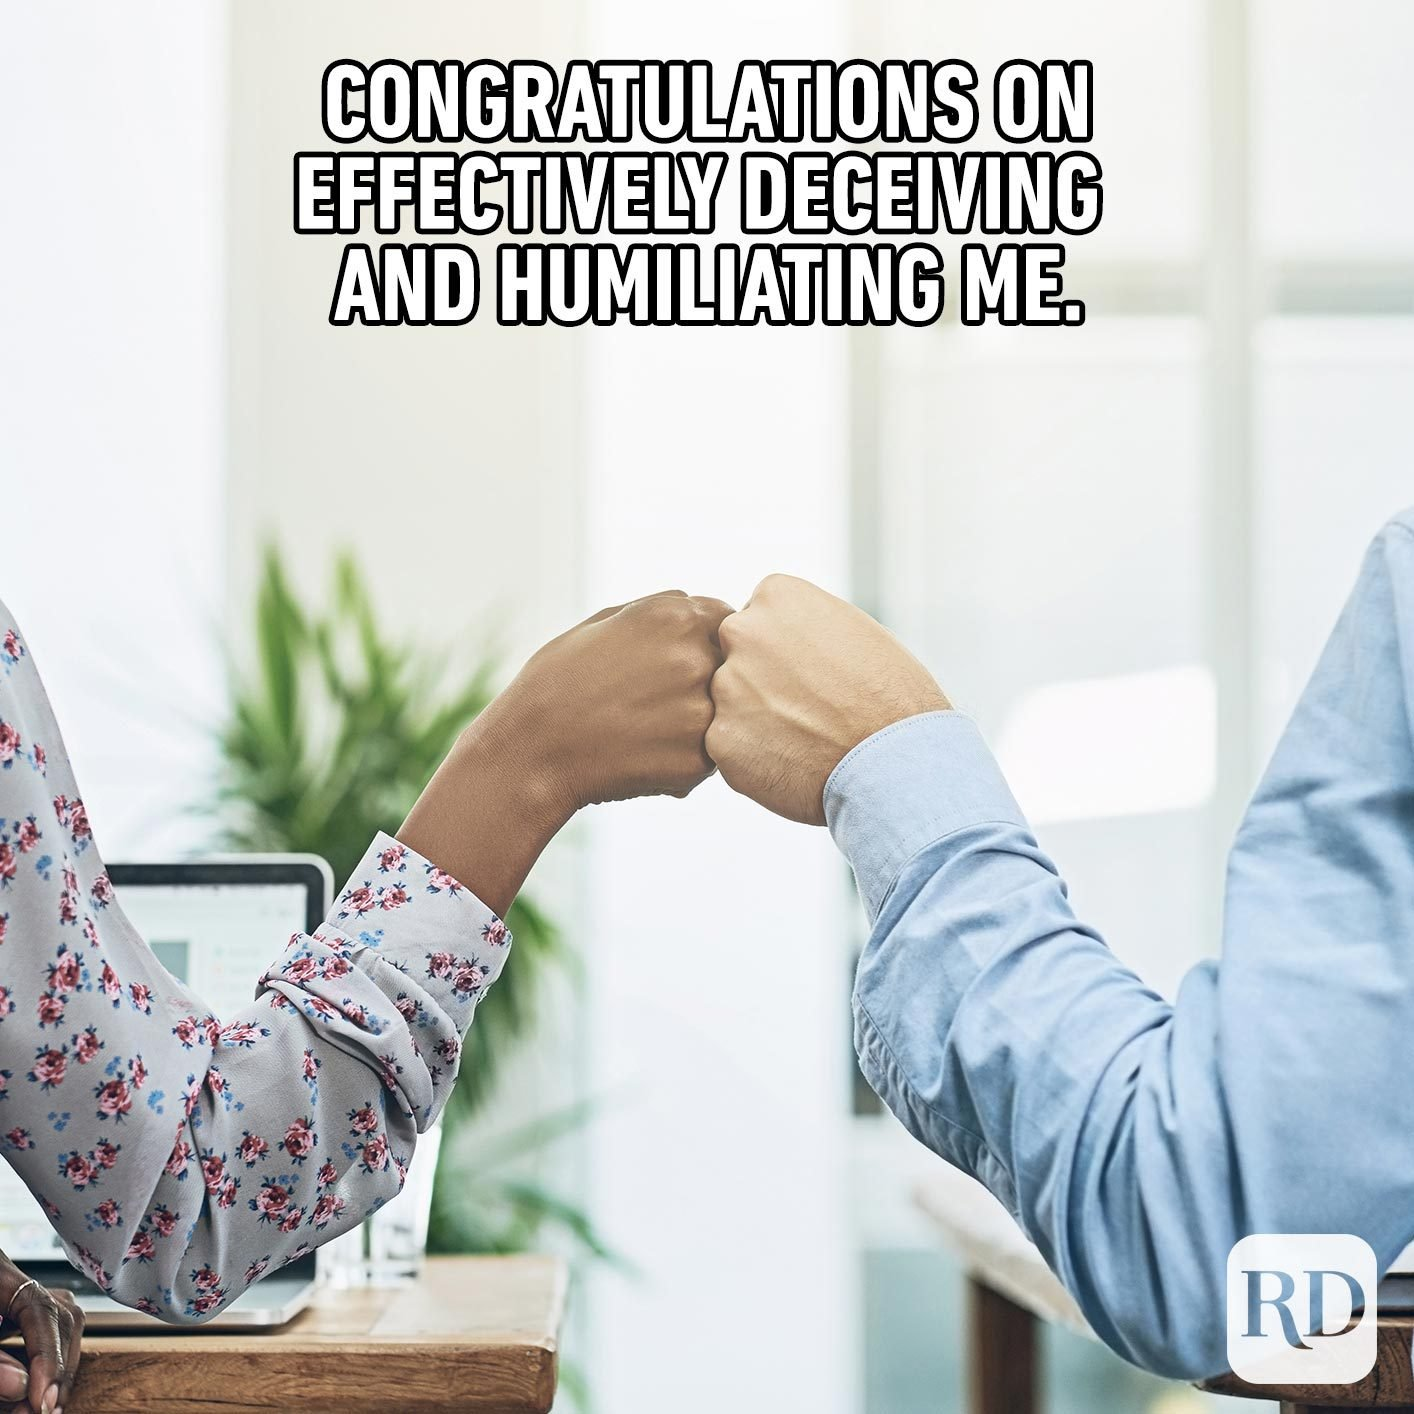 Two people bumping fists. Meme text: Congratulations on effectively deceiving and humiliating me.